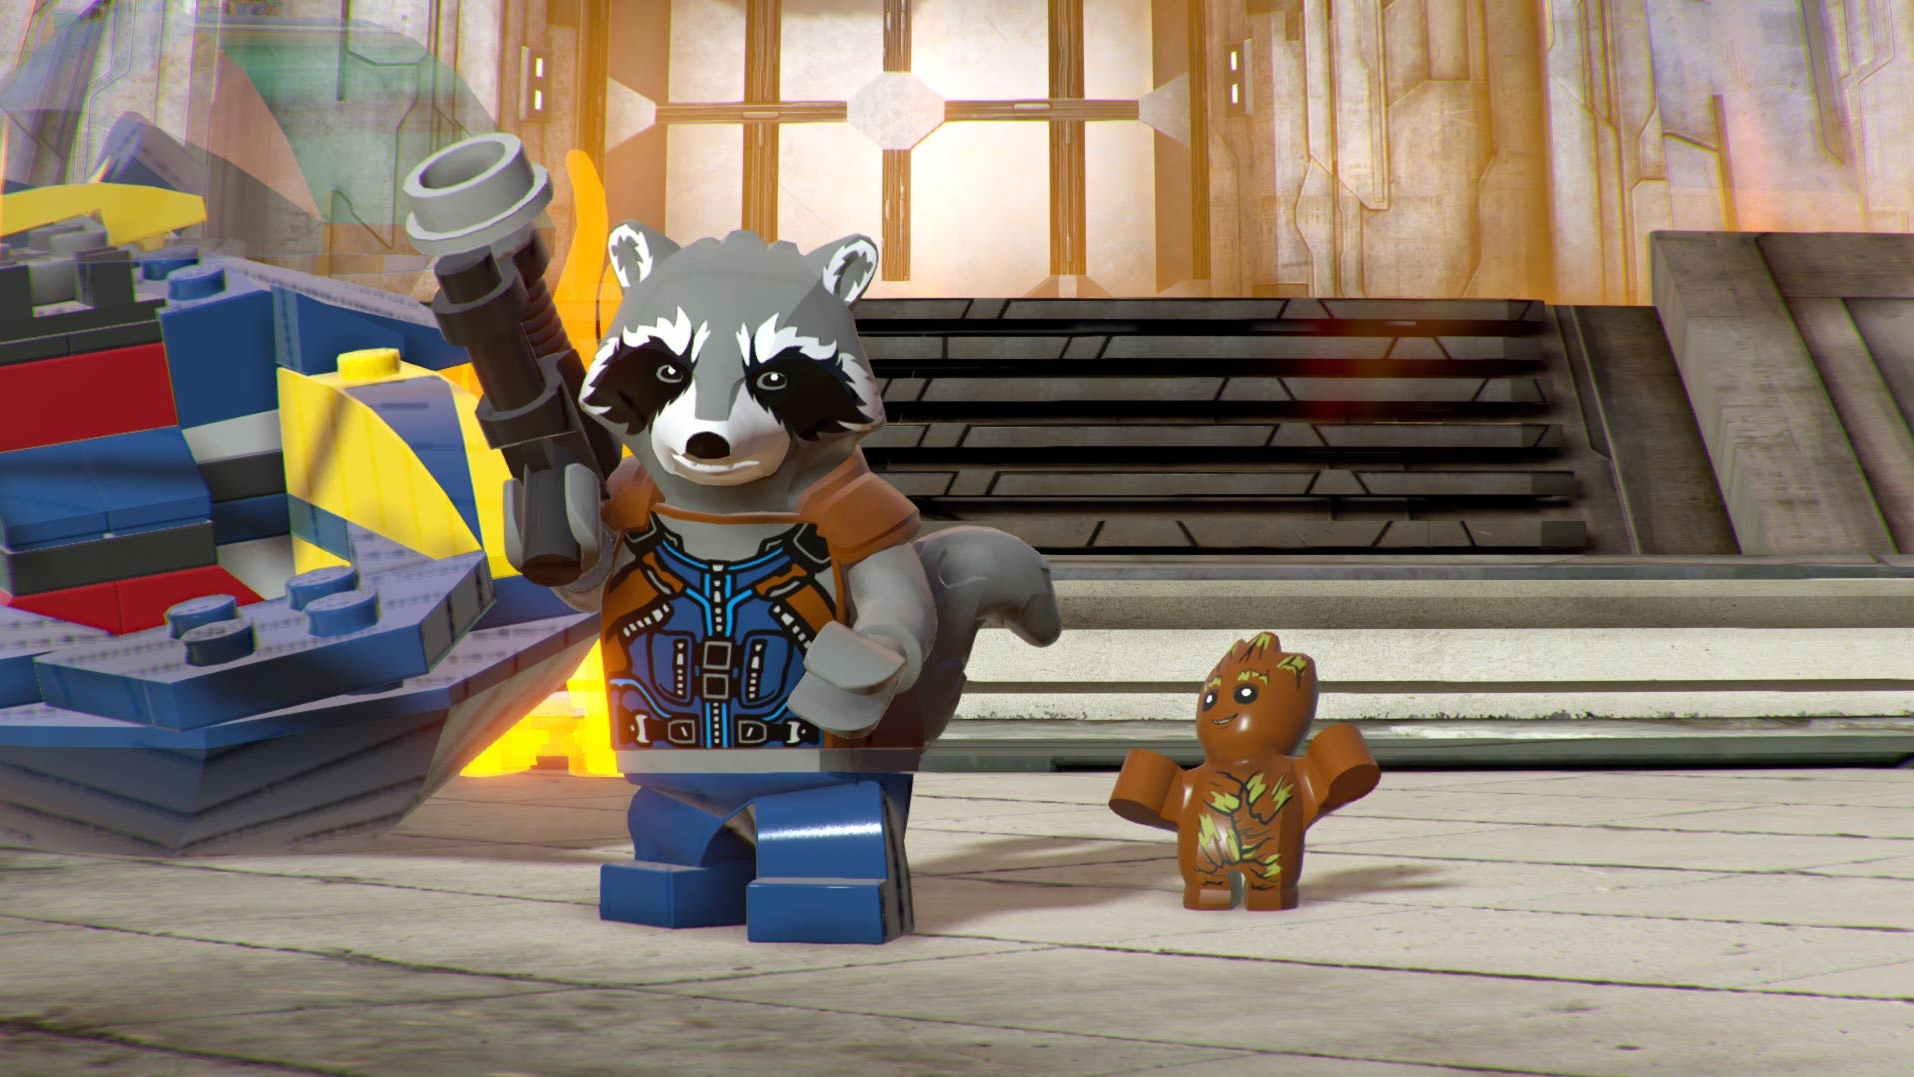 Rocket and Baby Groot wait for action in Lego Marvel Super Heroes 2.